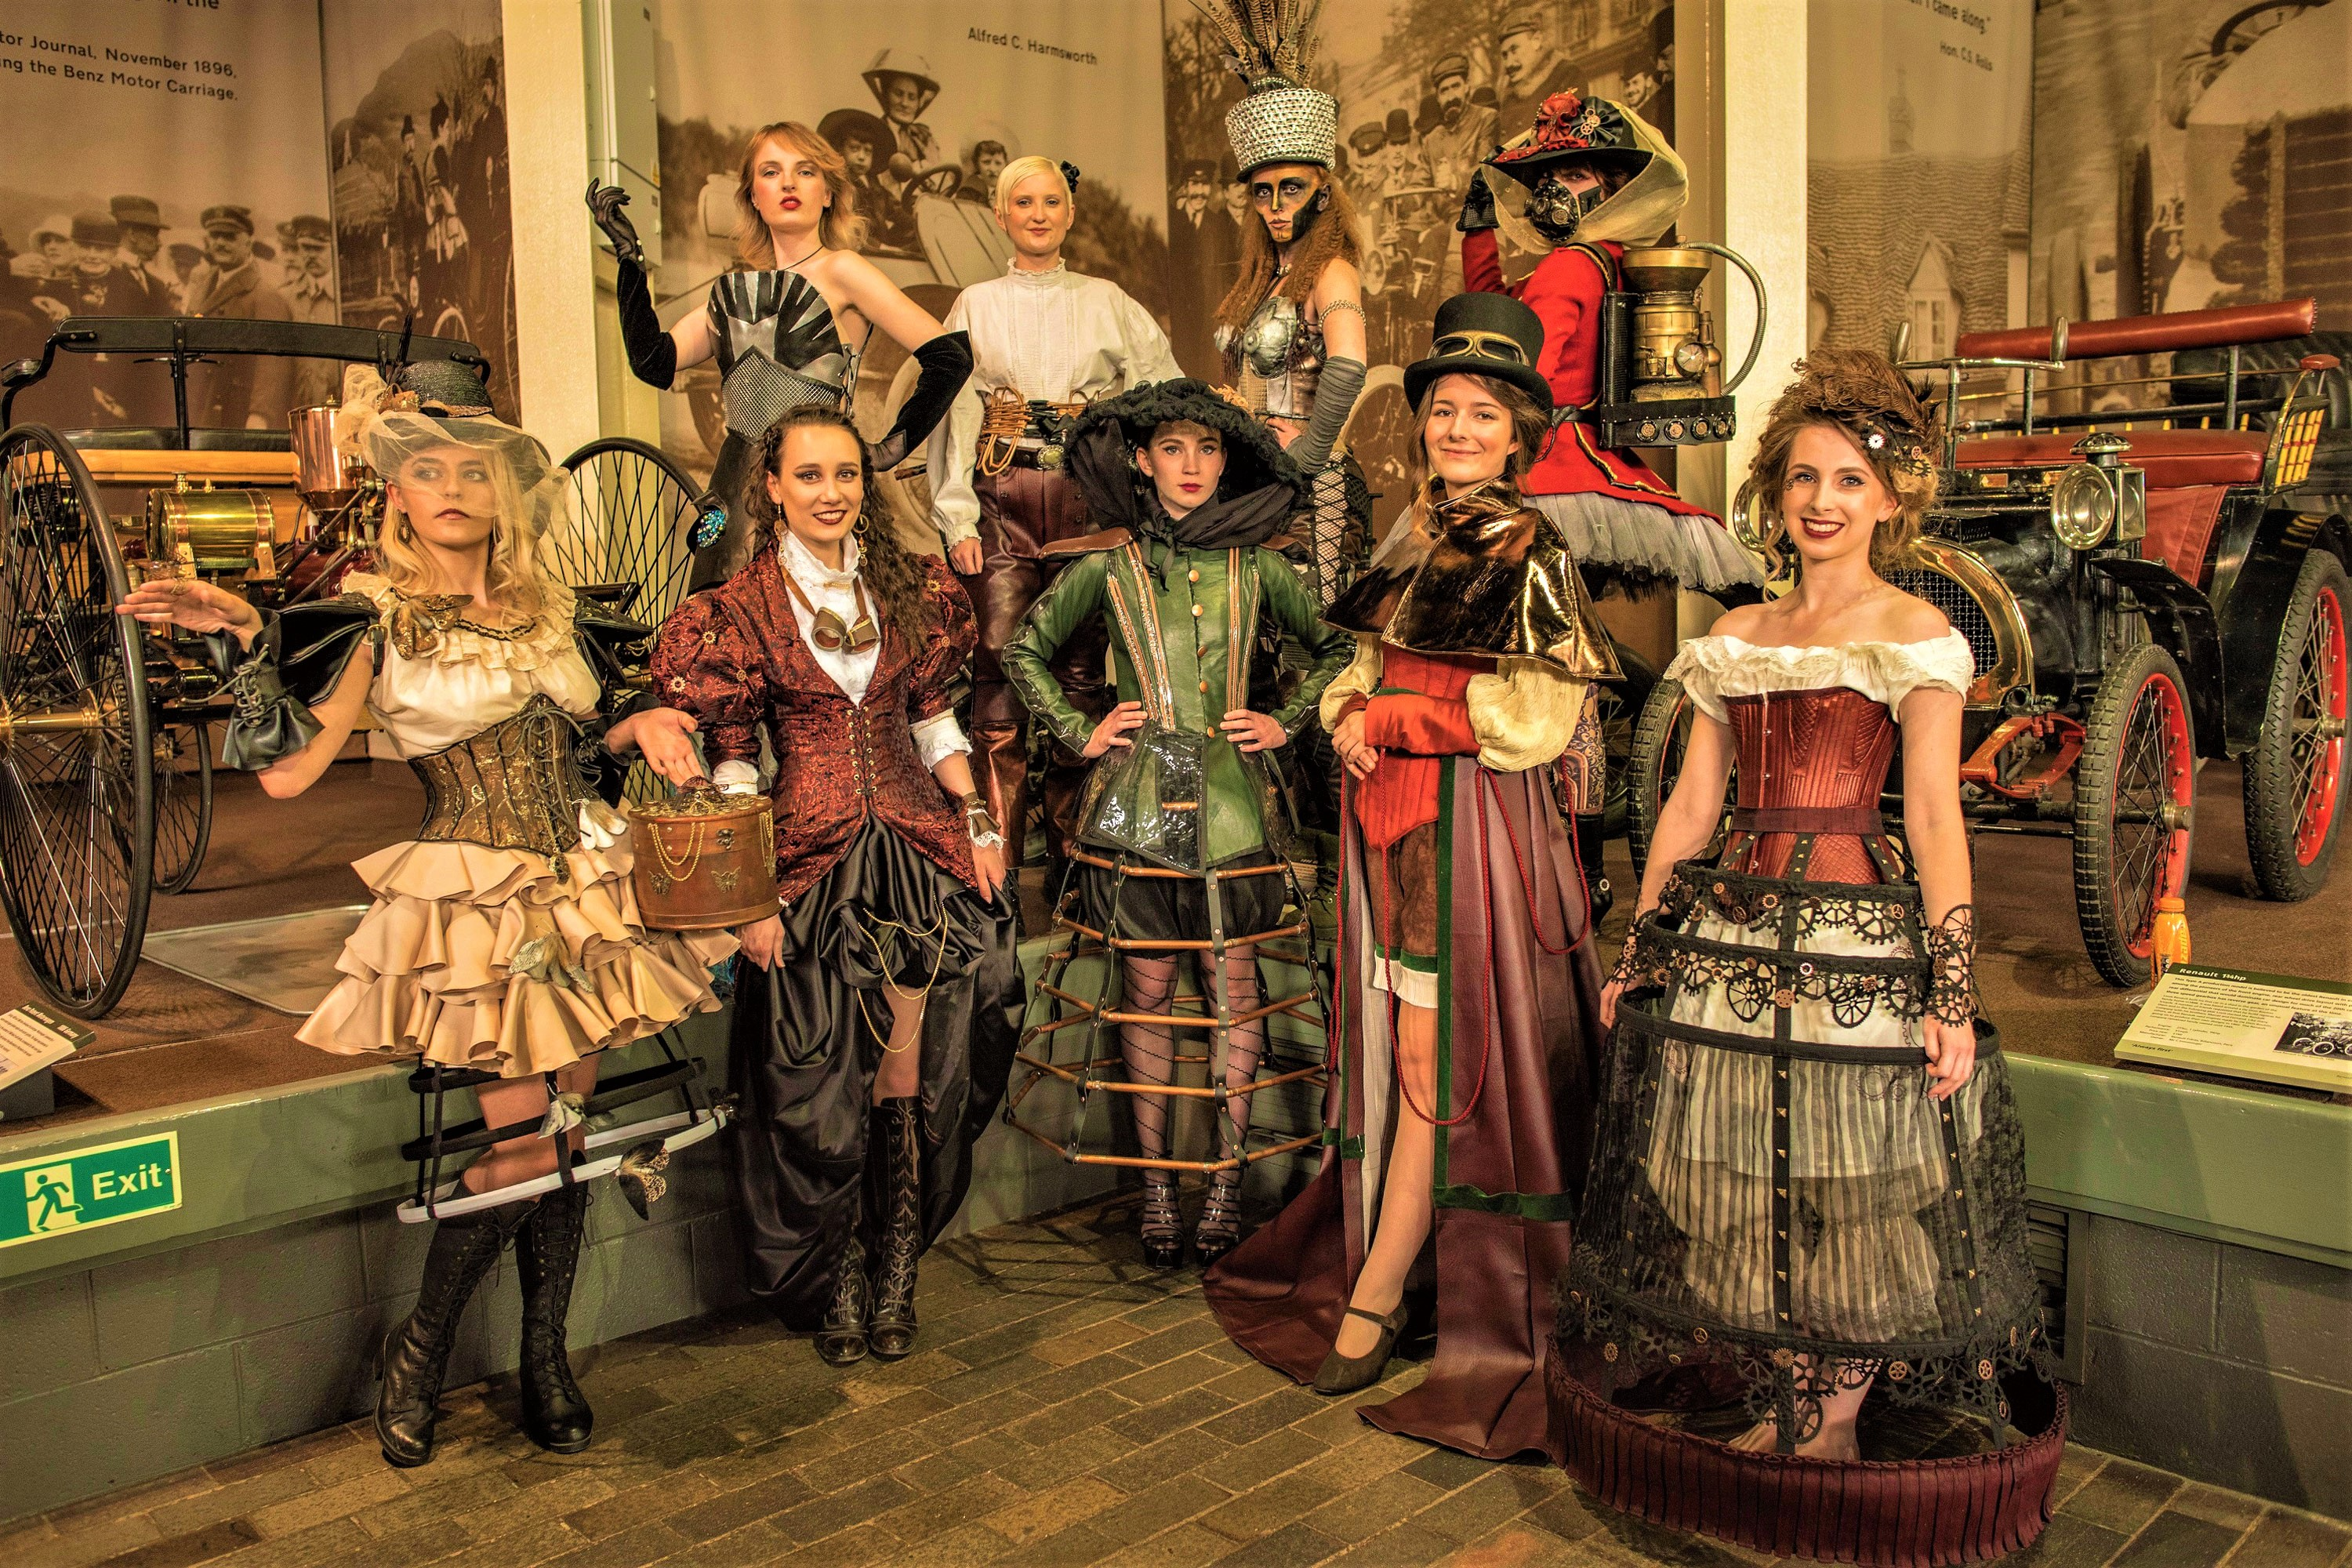 Students modelling steampunk costume at the National Motor Museum